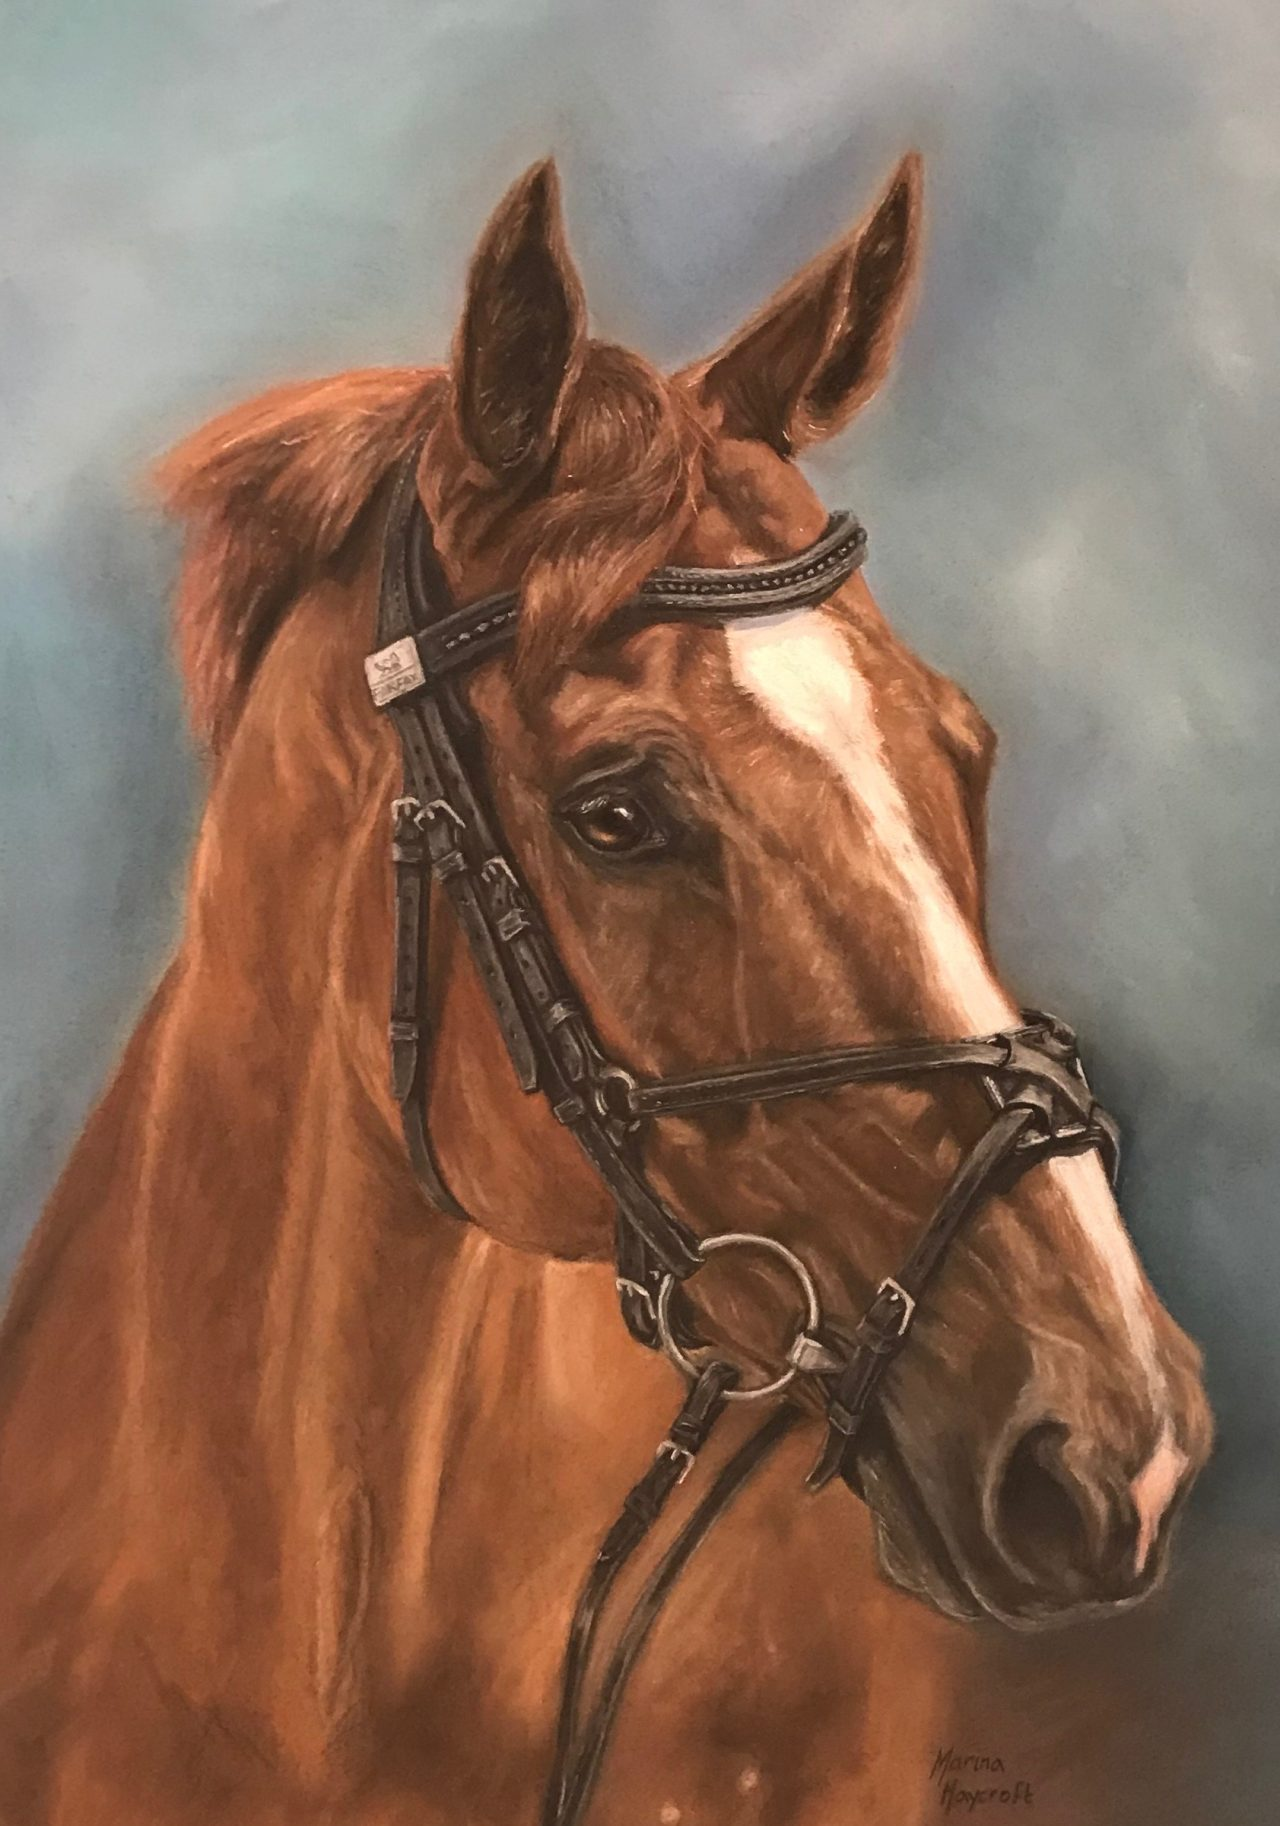 https://www.customhorseportraits.com/wp-content/uploads/IMG_6142-1280x1826.jpg